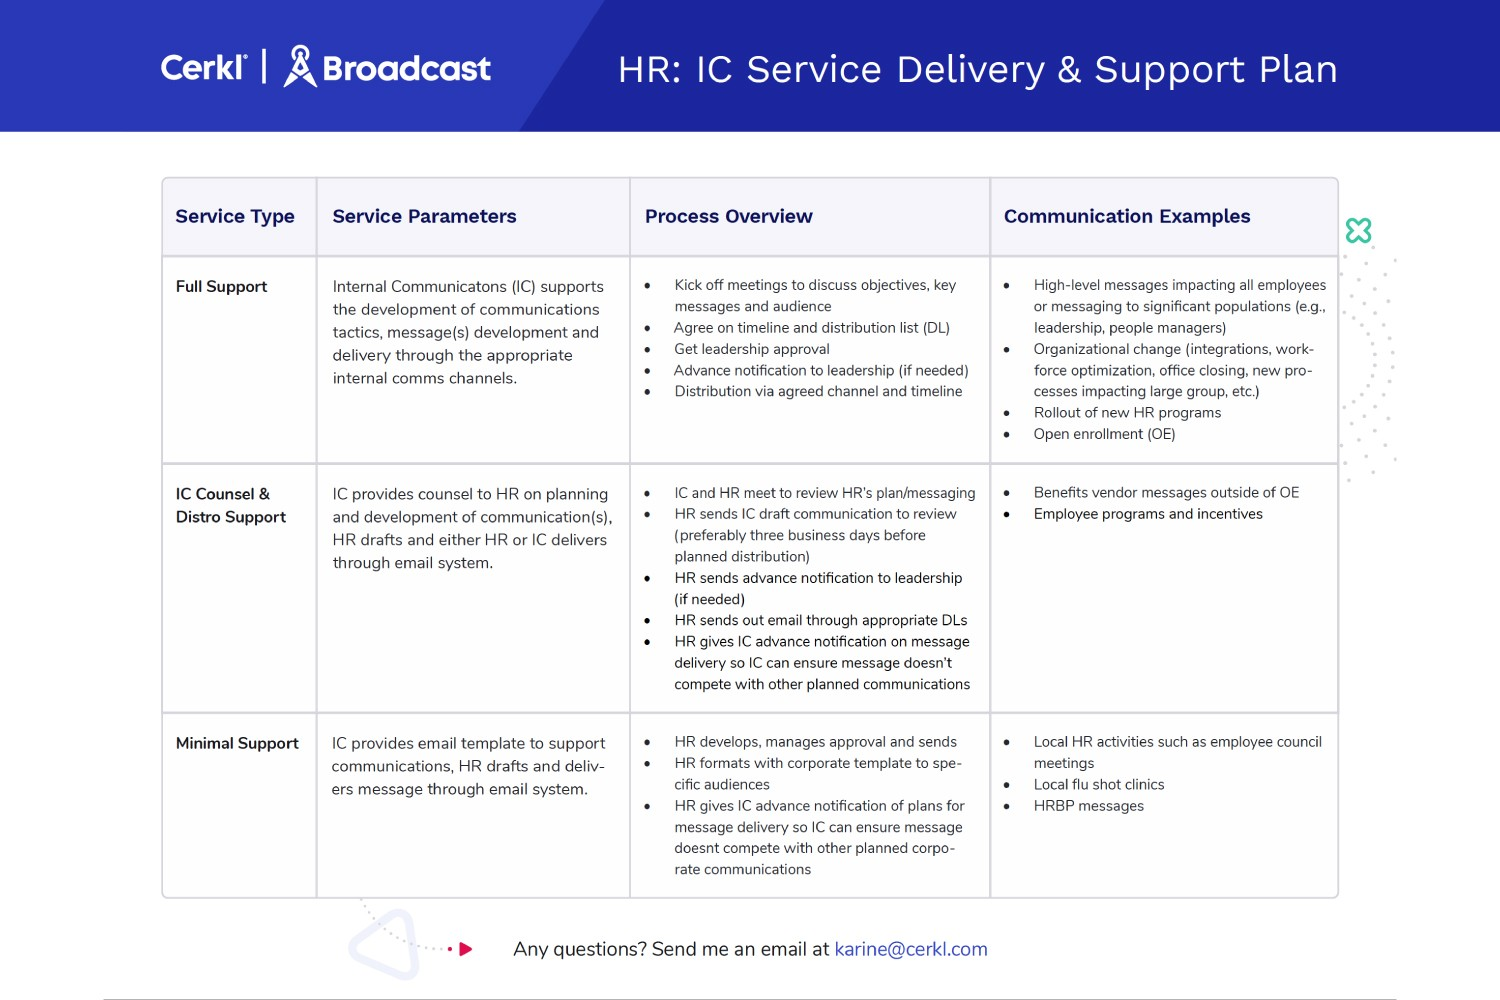 HR: IC Service Delivery & Support Template